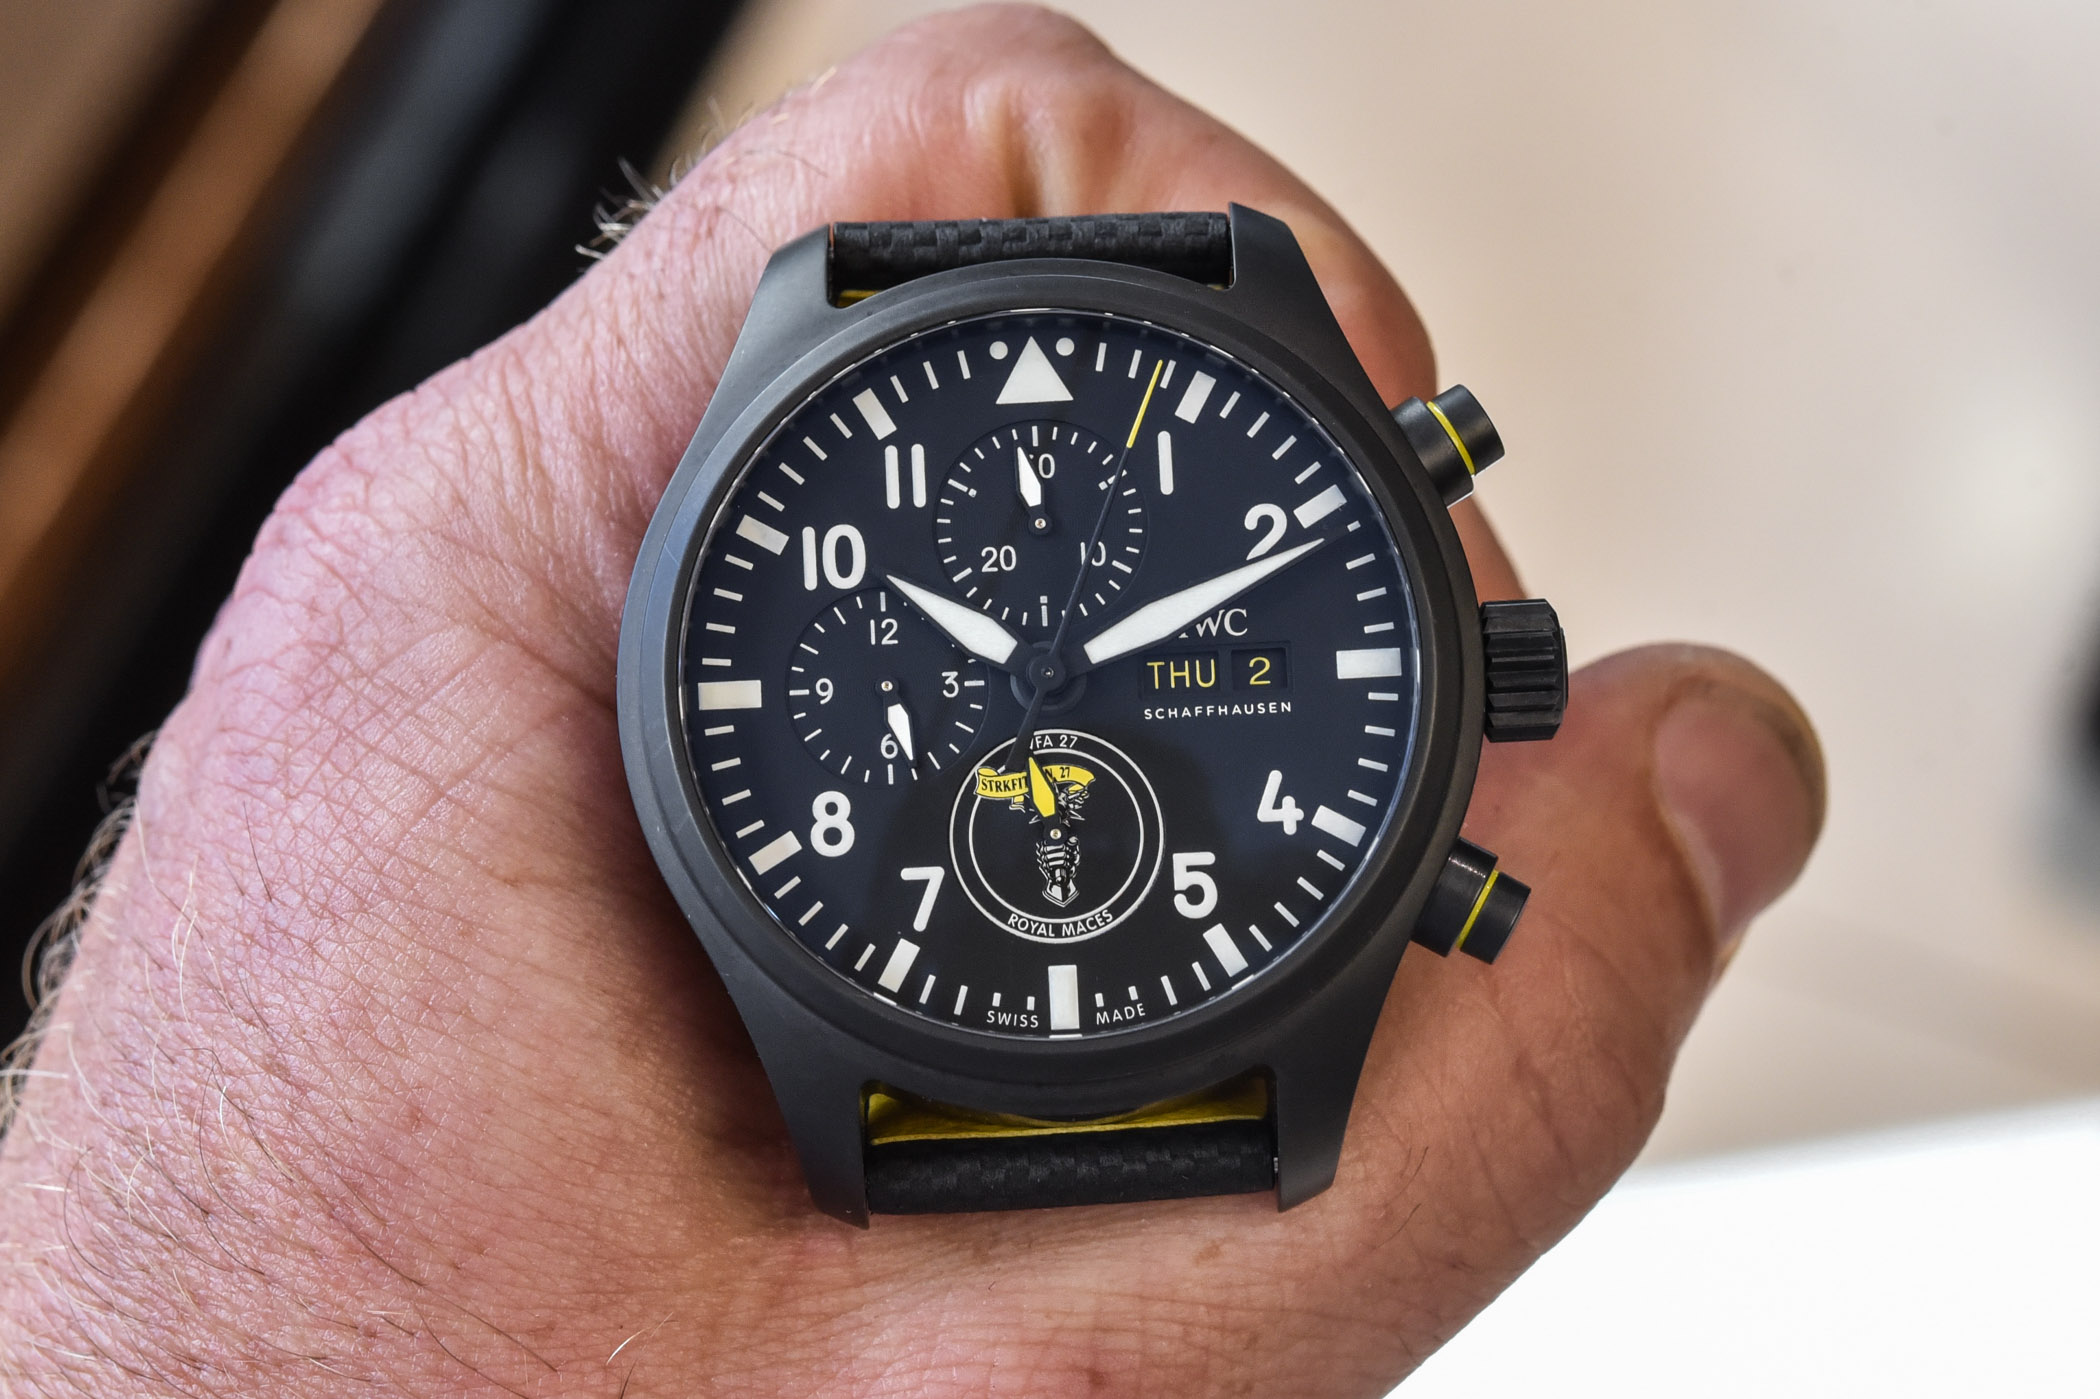 IWC Pilot's Watch Chronograph US Navy Squadrons Editions Royal Maces IW389107